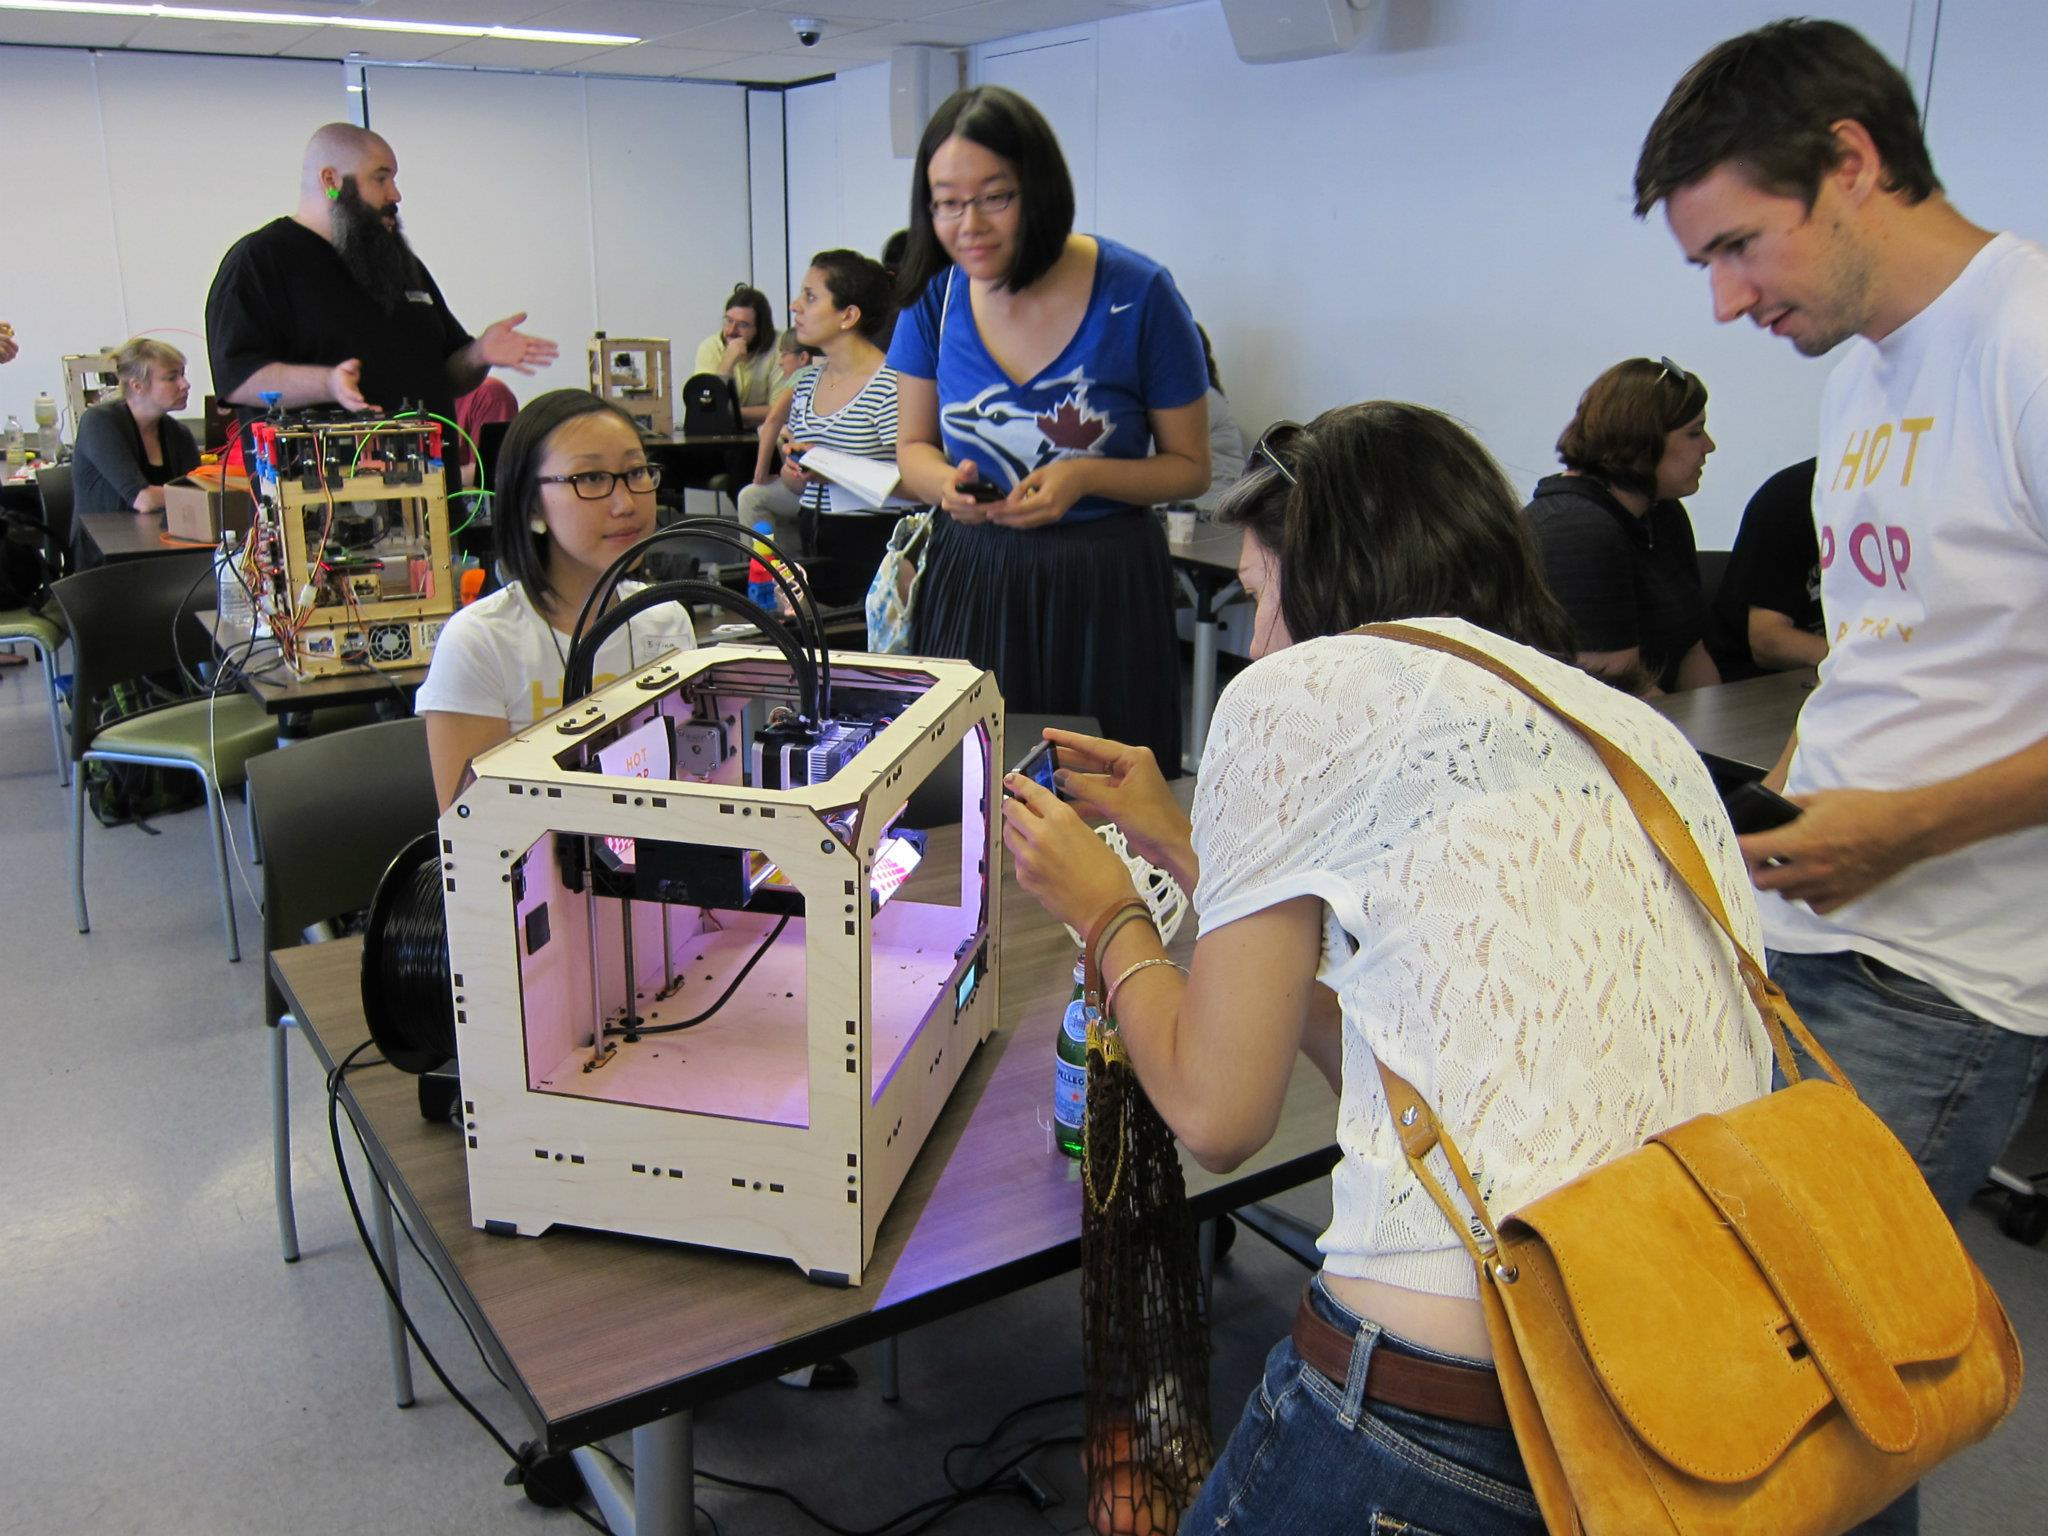 Ladies Learning 3d Printing Emergent Forms Matthew